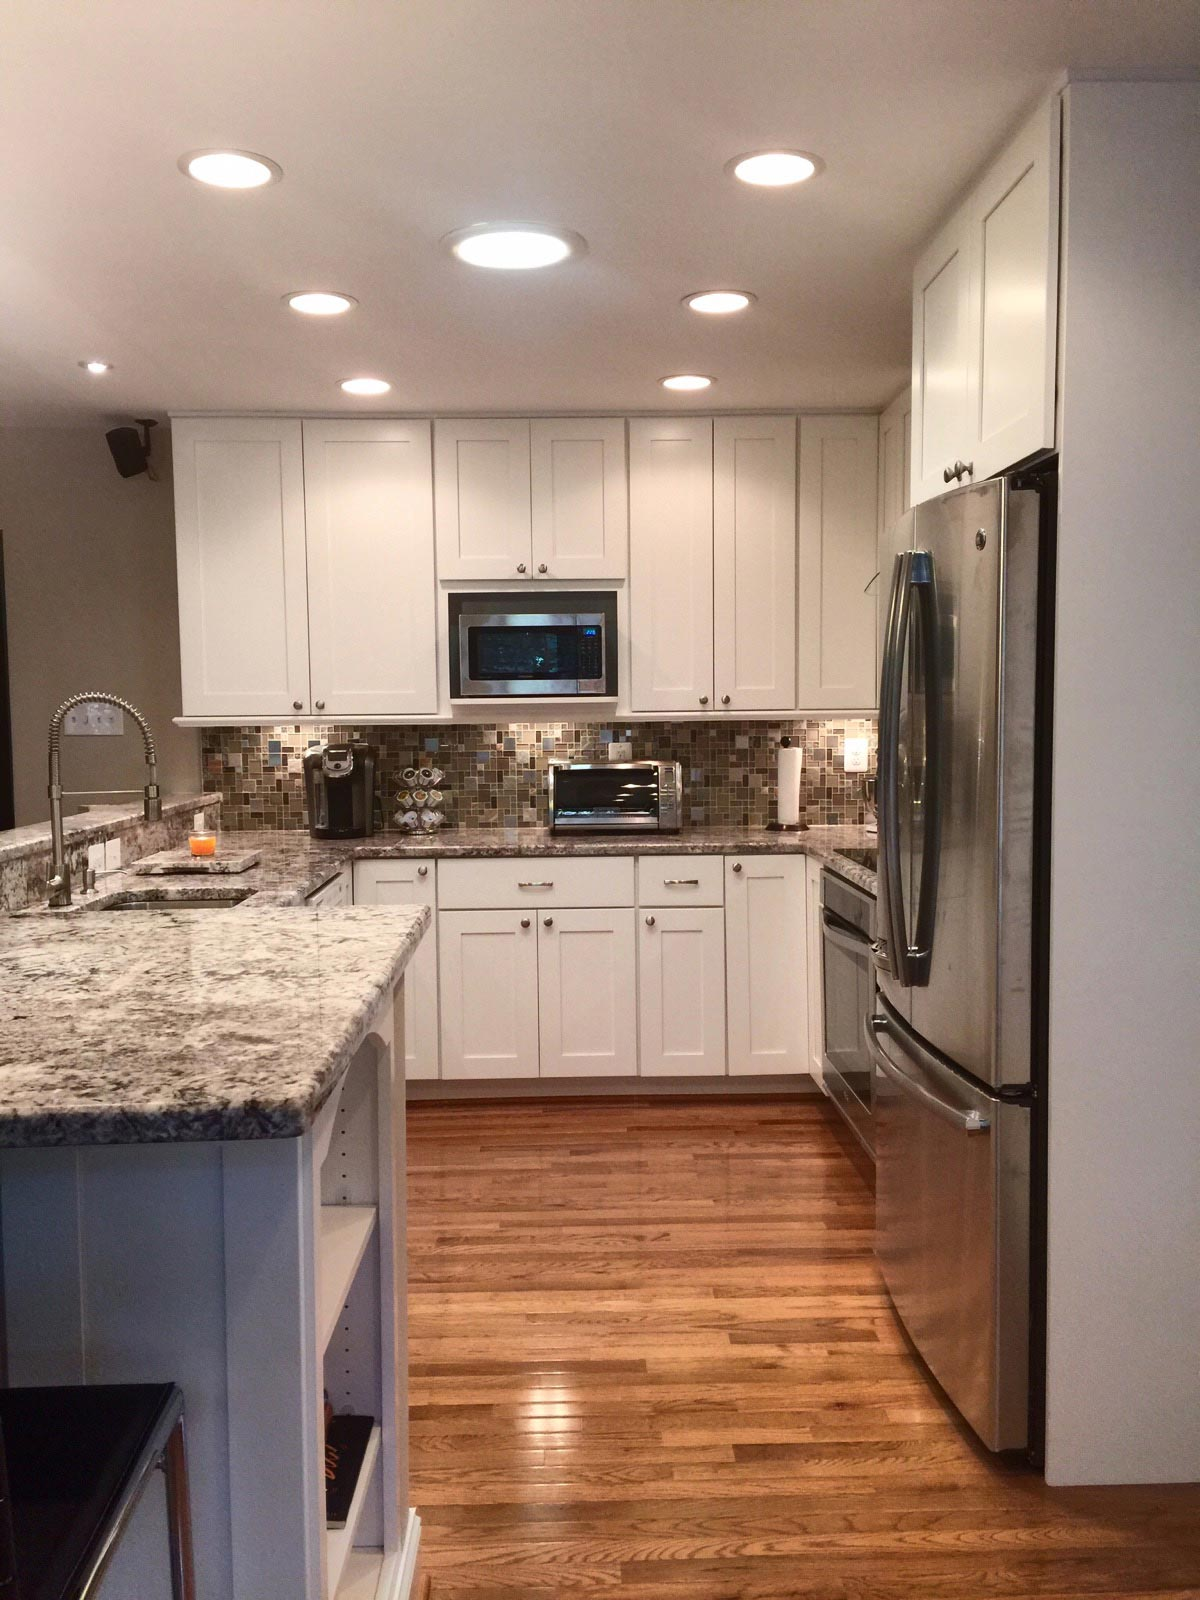 Kitchen Remodeling Fairfax Va Impressive Fairfax Va Kitchen Remodel  Bianco Renovations Decorating Inspiration